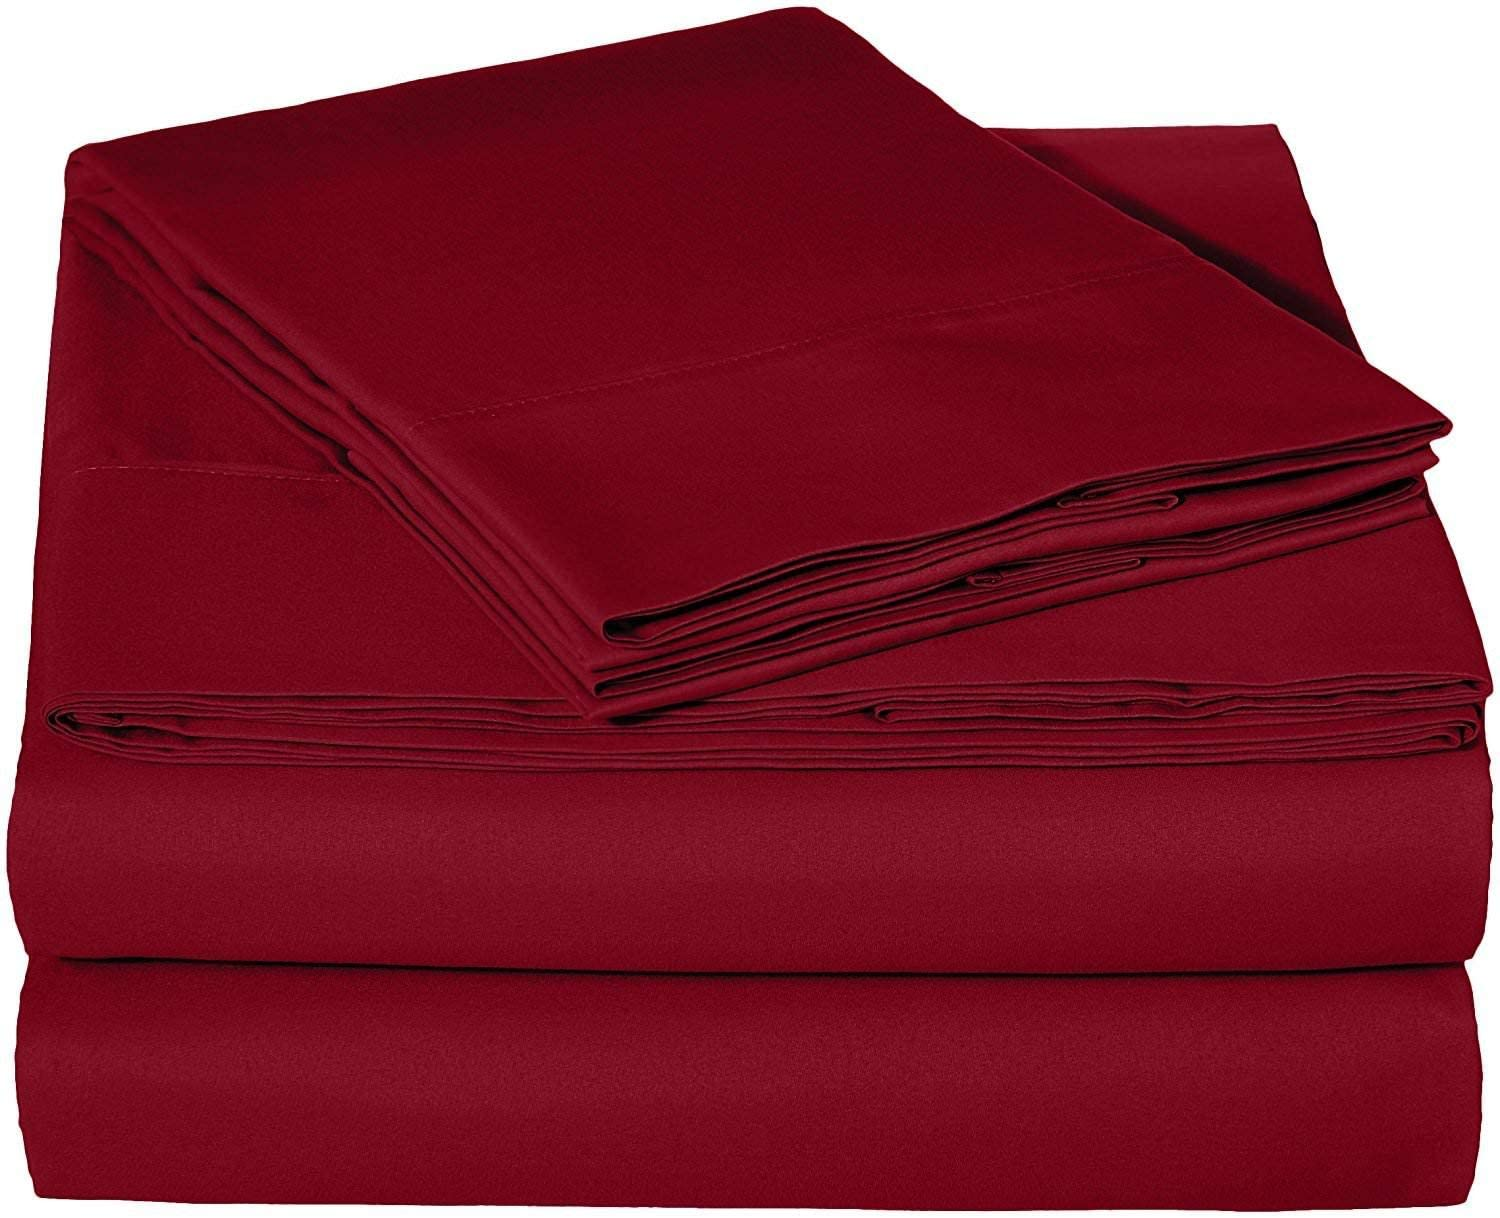 Microfiber RV Sheet Sets, 60x80 Camper Queen, Burgundy Solid, Bed Sheets for Campers, RV's & Travel Trailers Fit Mattress up to 15 Inch deep